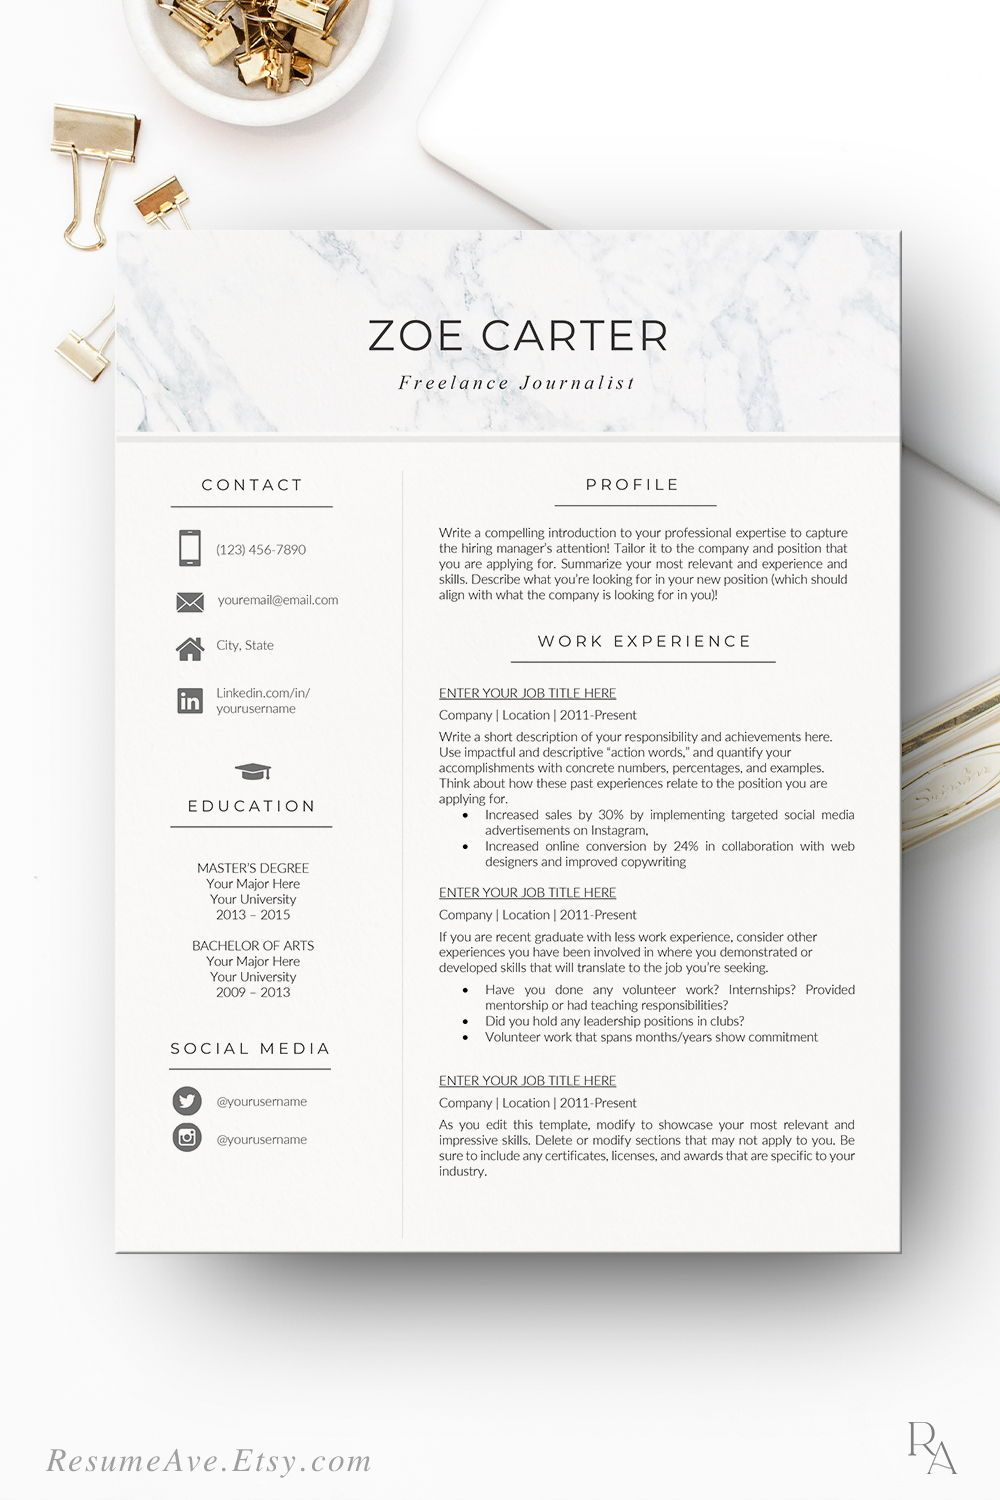 Nurse resume template with marble header, modern and